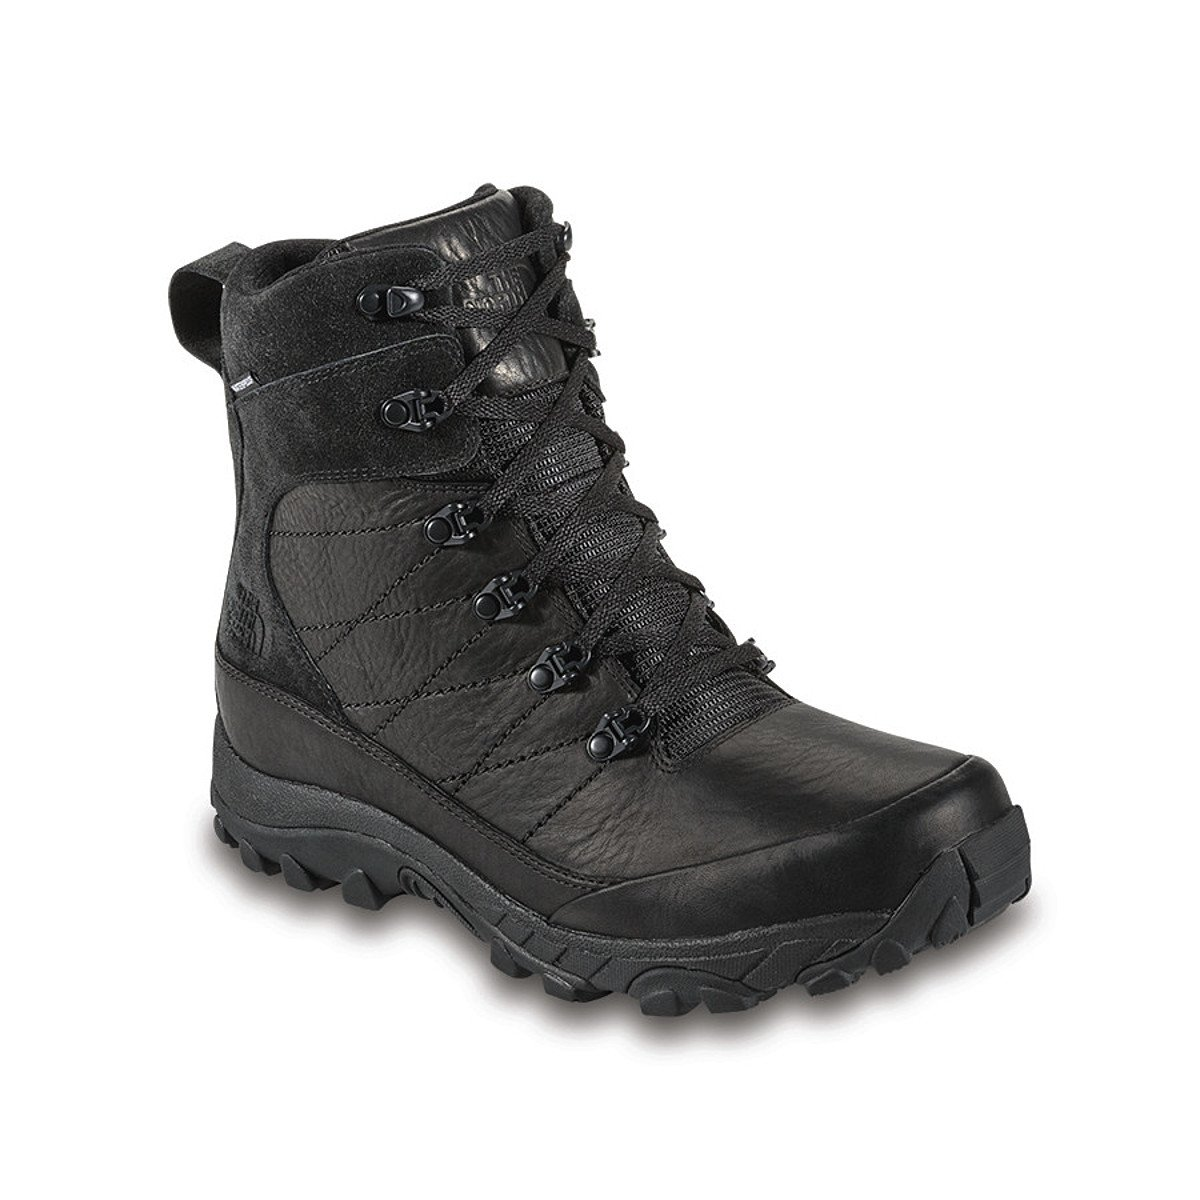 2cc4ead5f The North Face Men's Chilkat Leather Boot